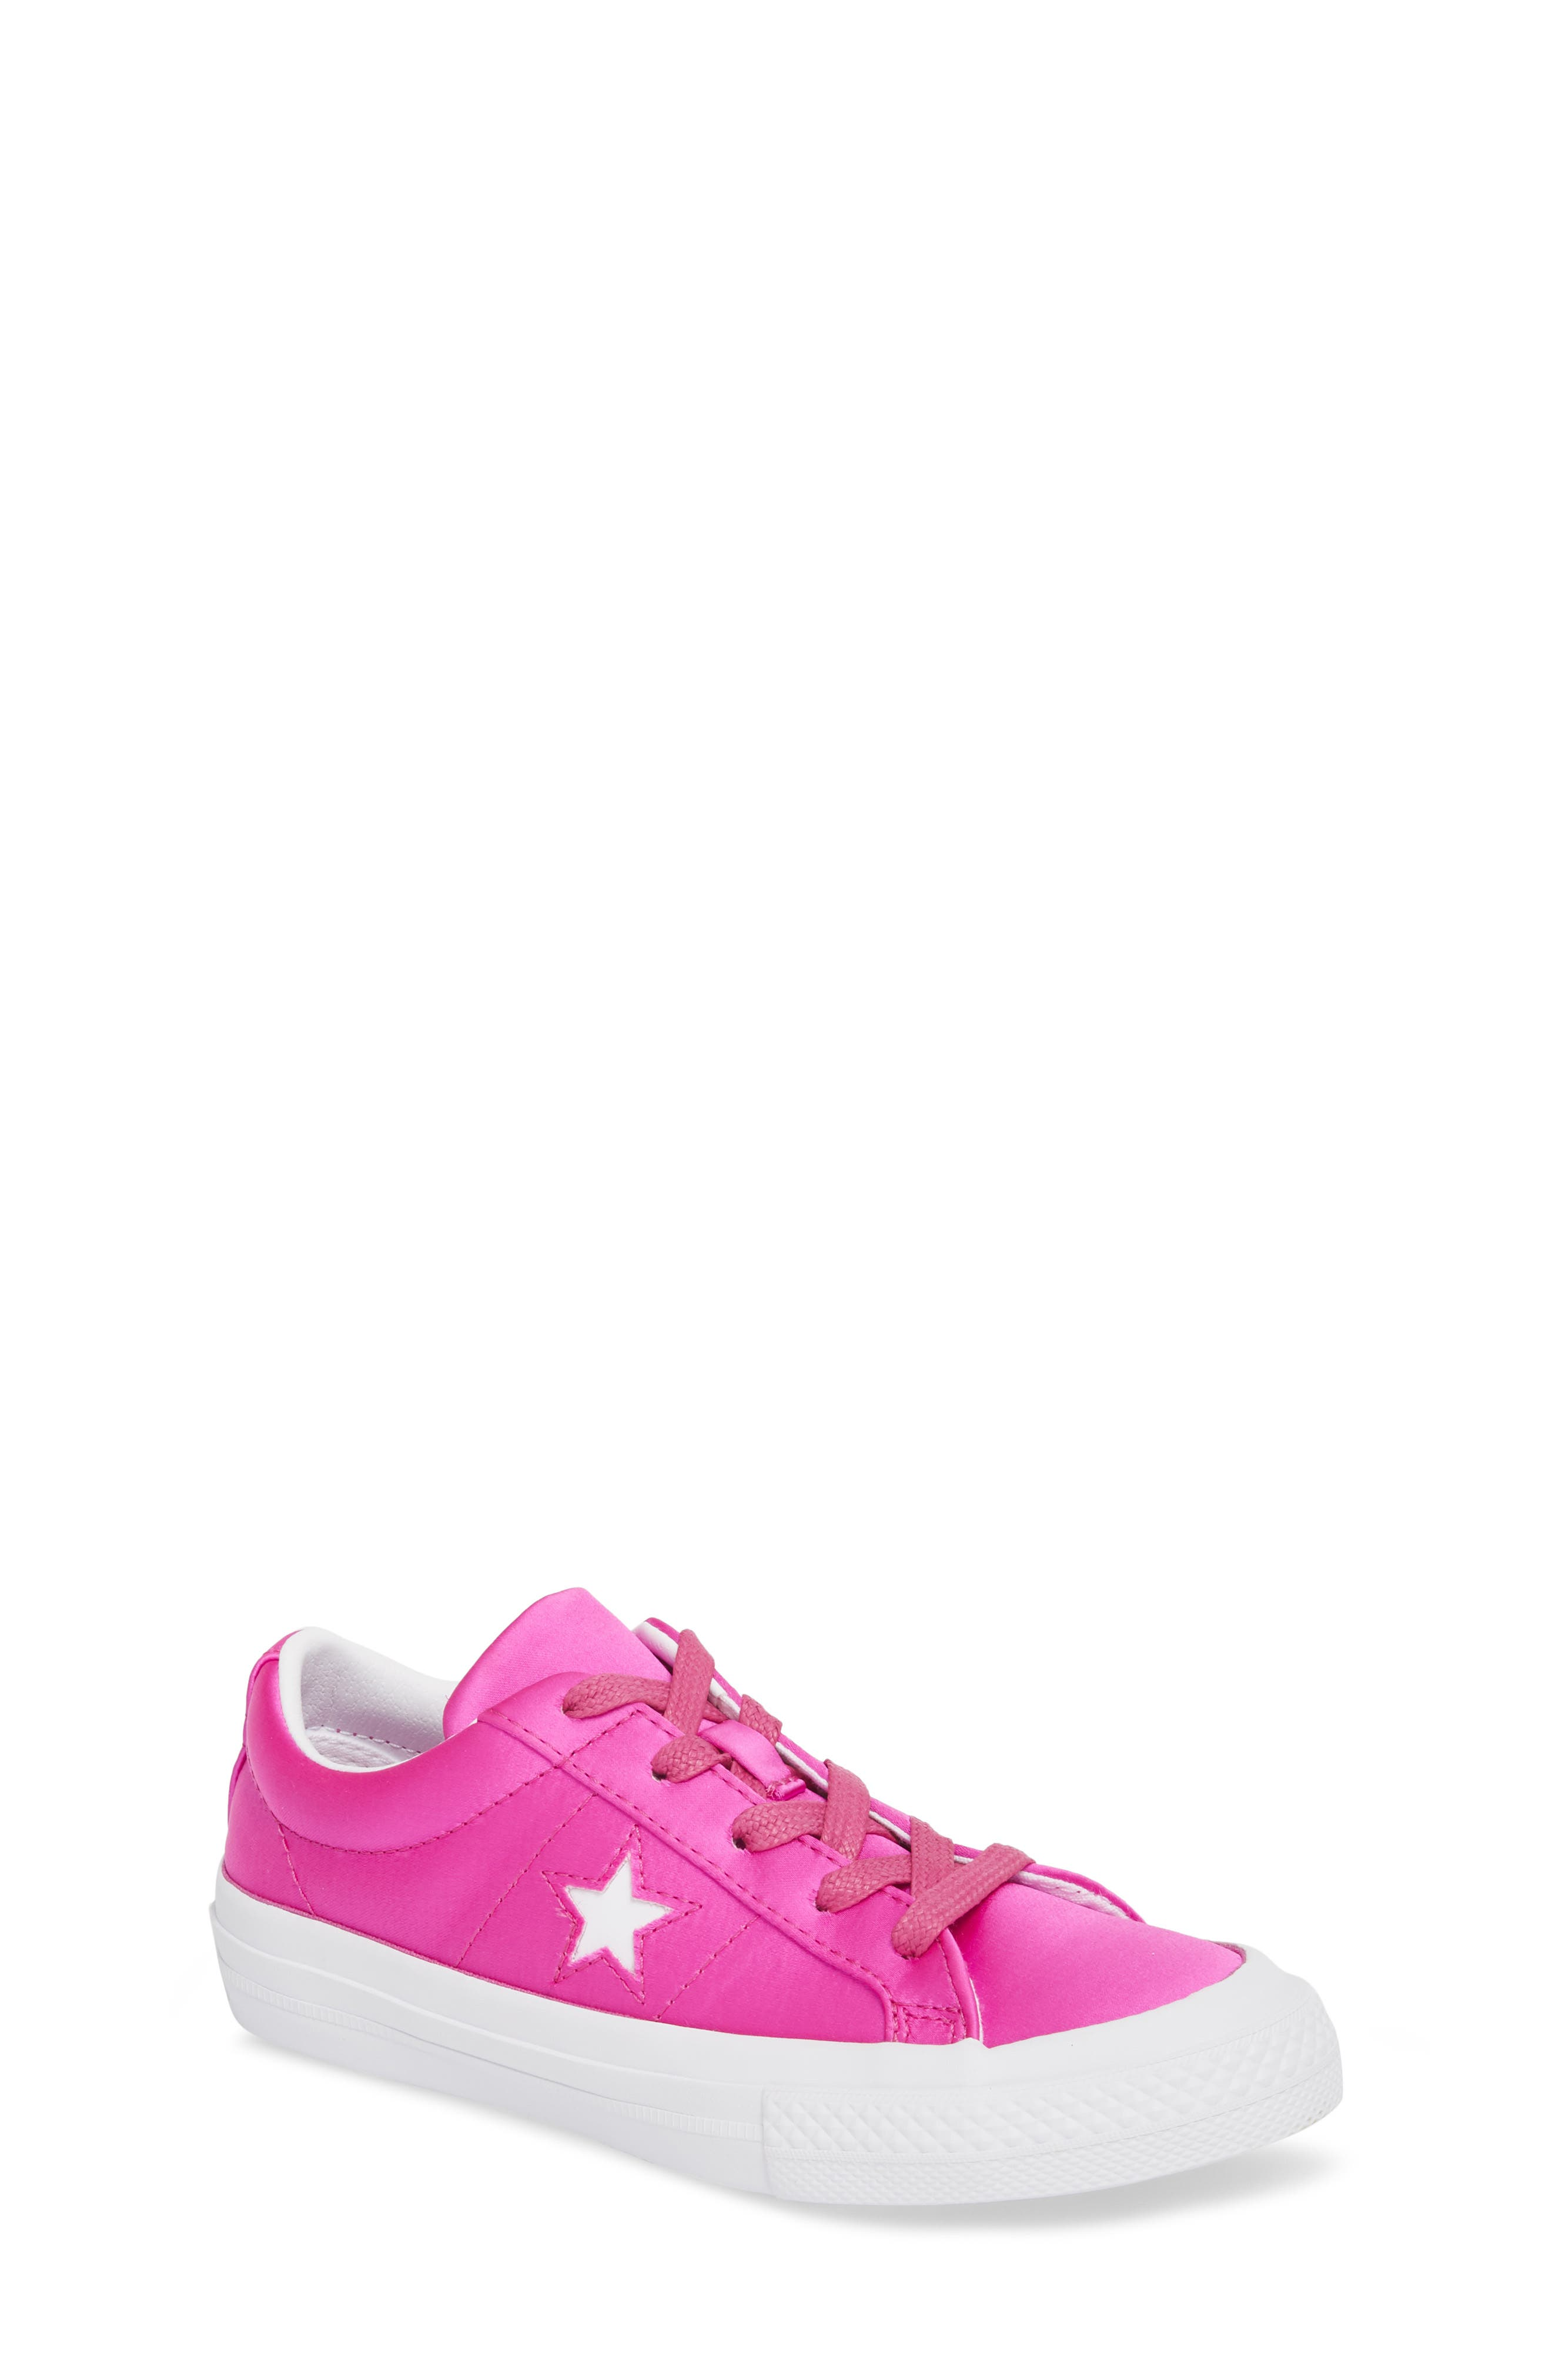 Chuck Taylor<sup>®</sup> All Star<sup>®</sup> One Star Satin Low Top Sneaker,                             Main thumbnail 1, color,                             Hyper Magenta